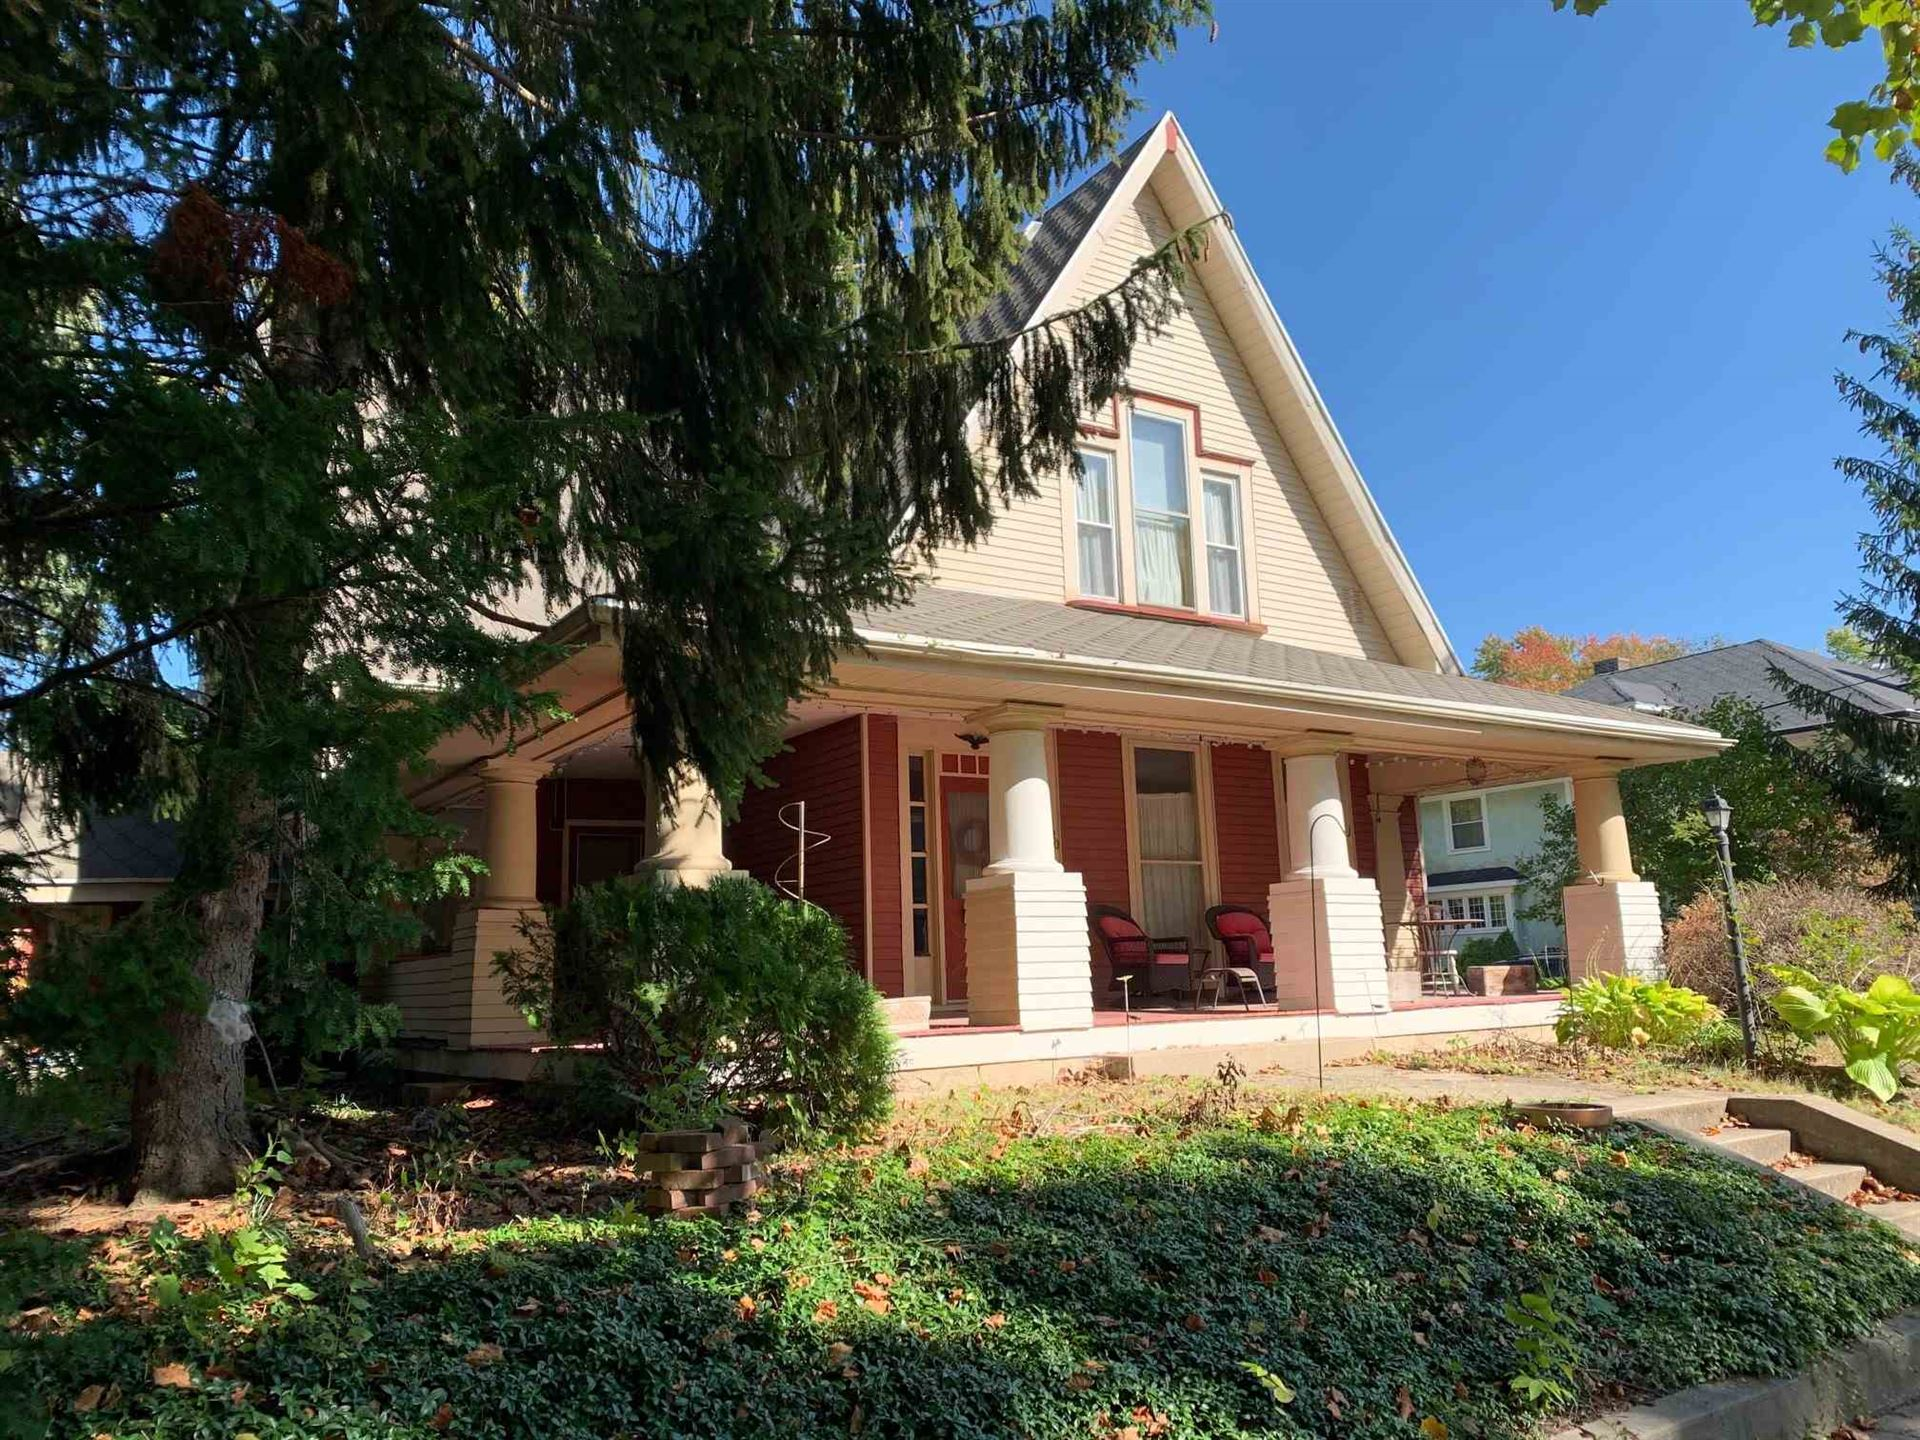 520 E Main Street, Crawfordsville, IN 47933 - MLS#: 201945257